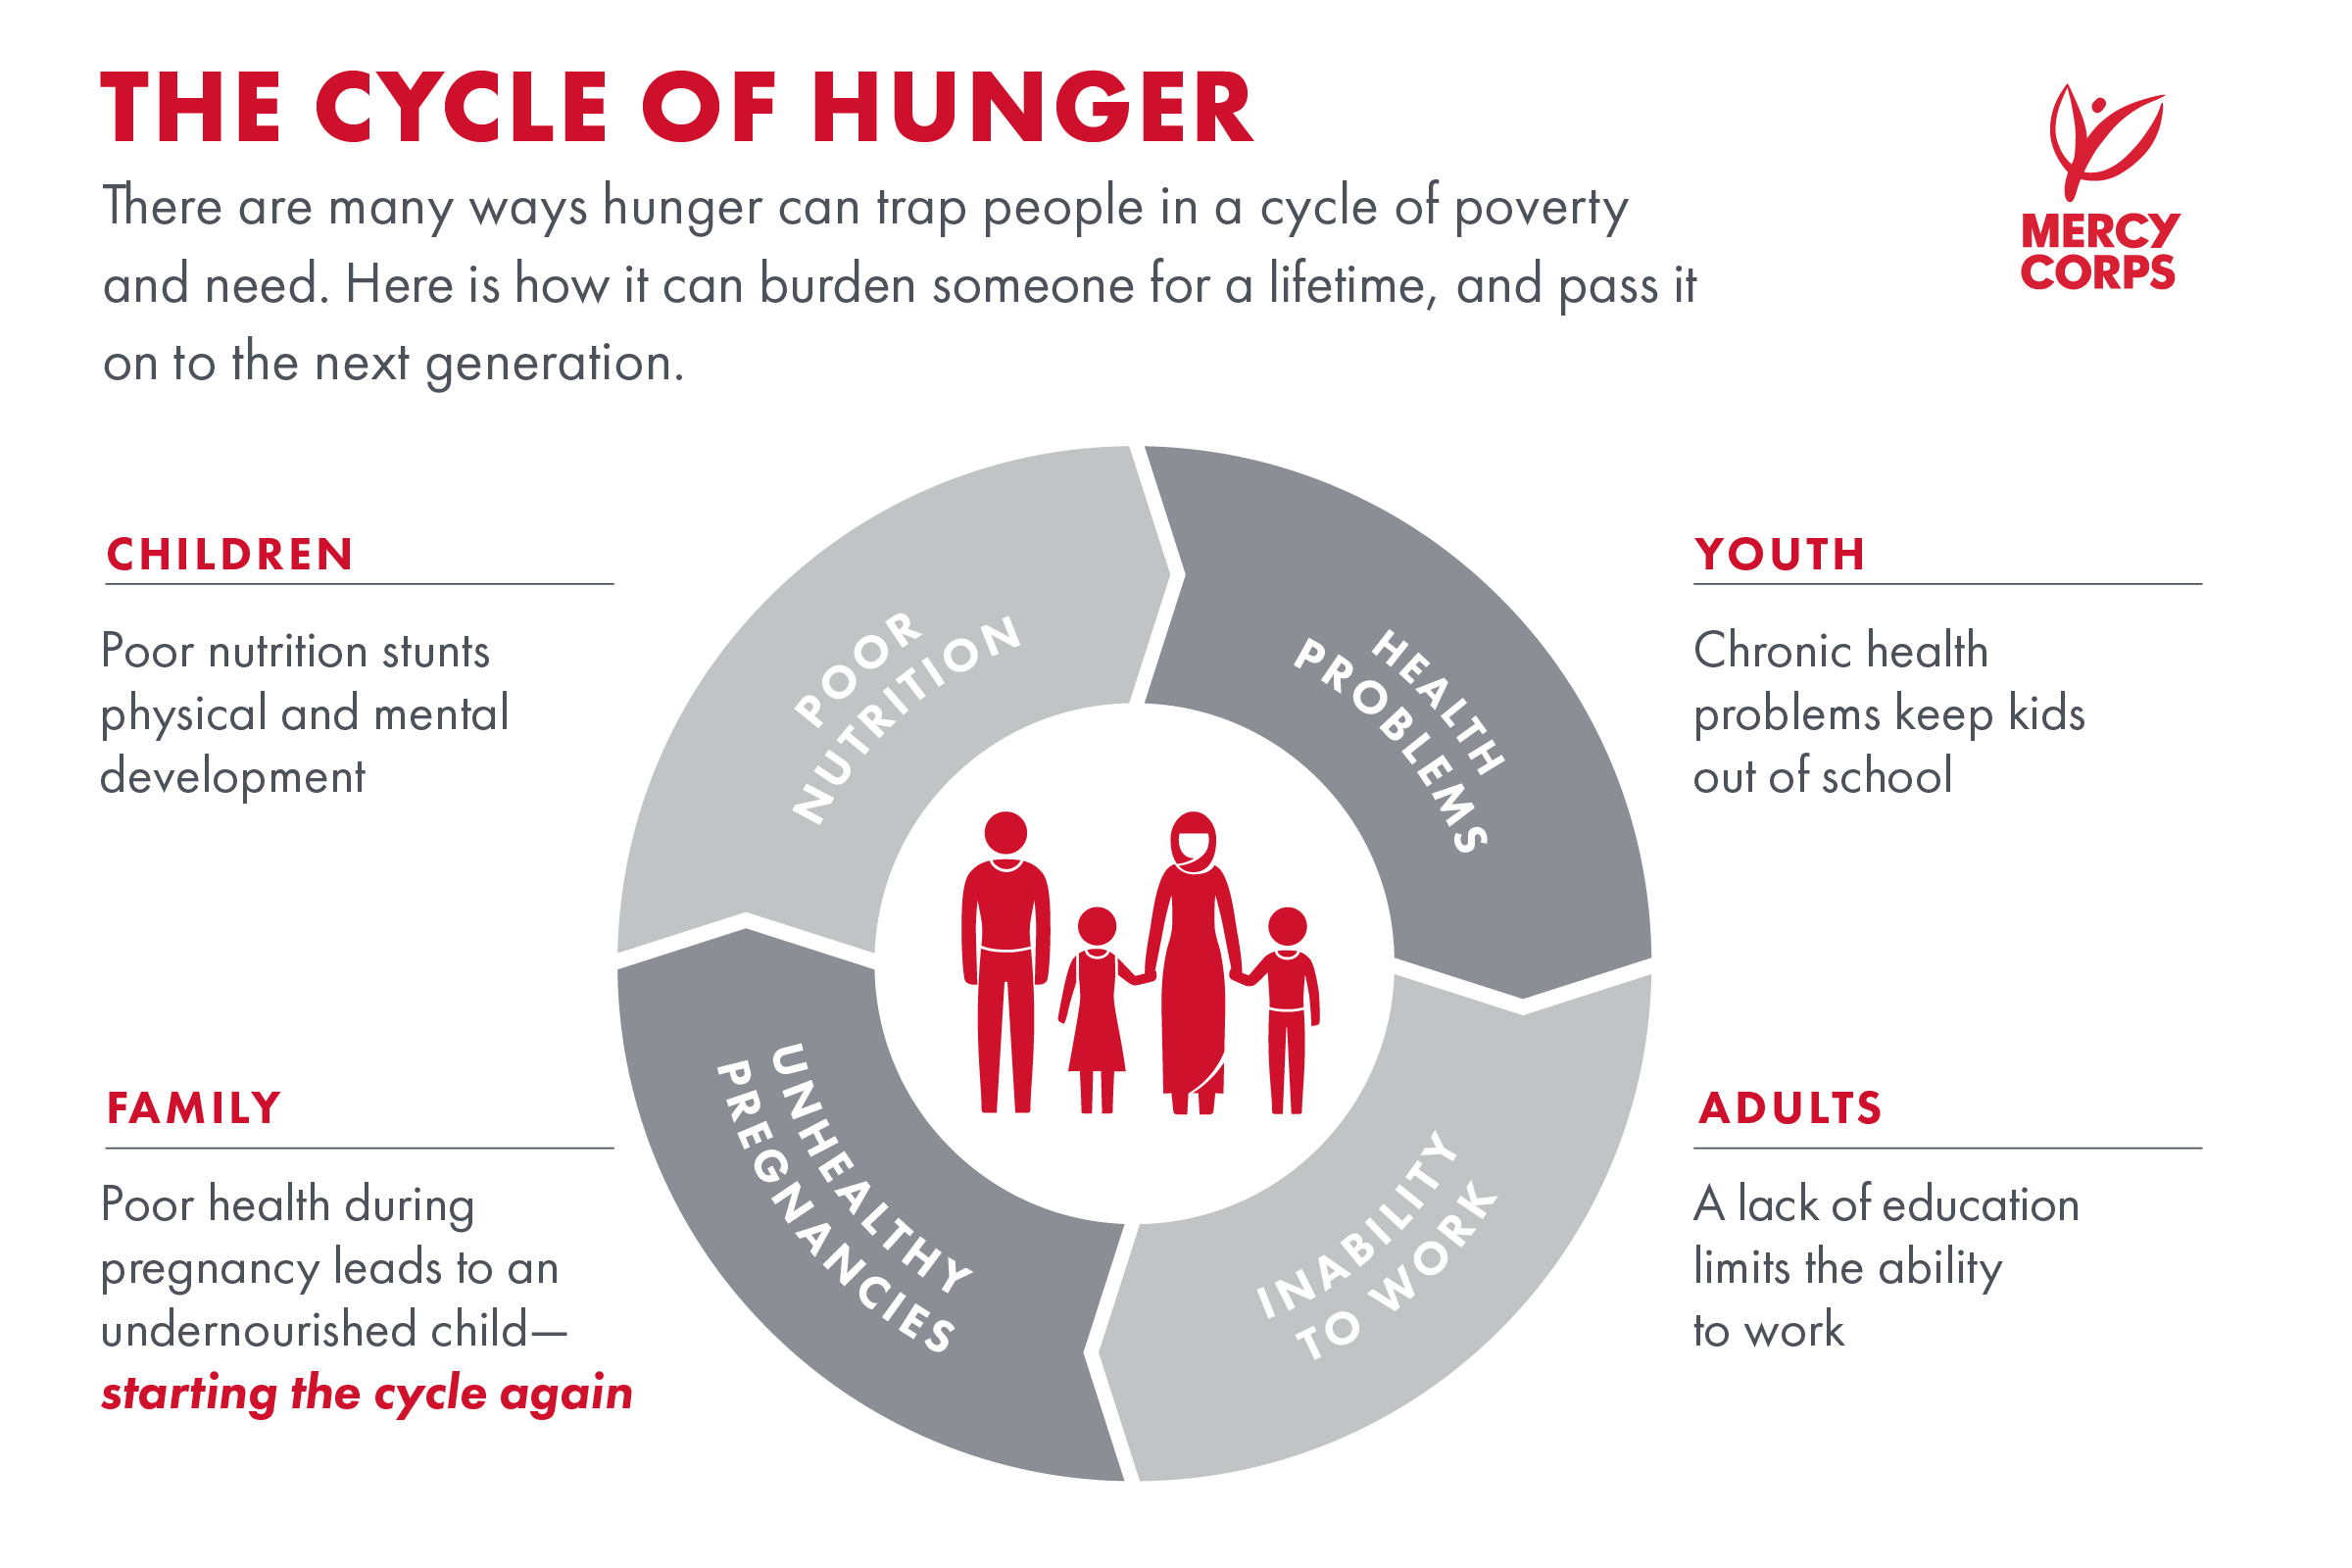 HungerCycle-orgmercycorps